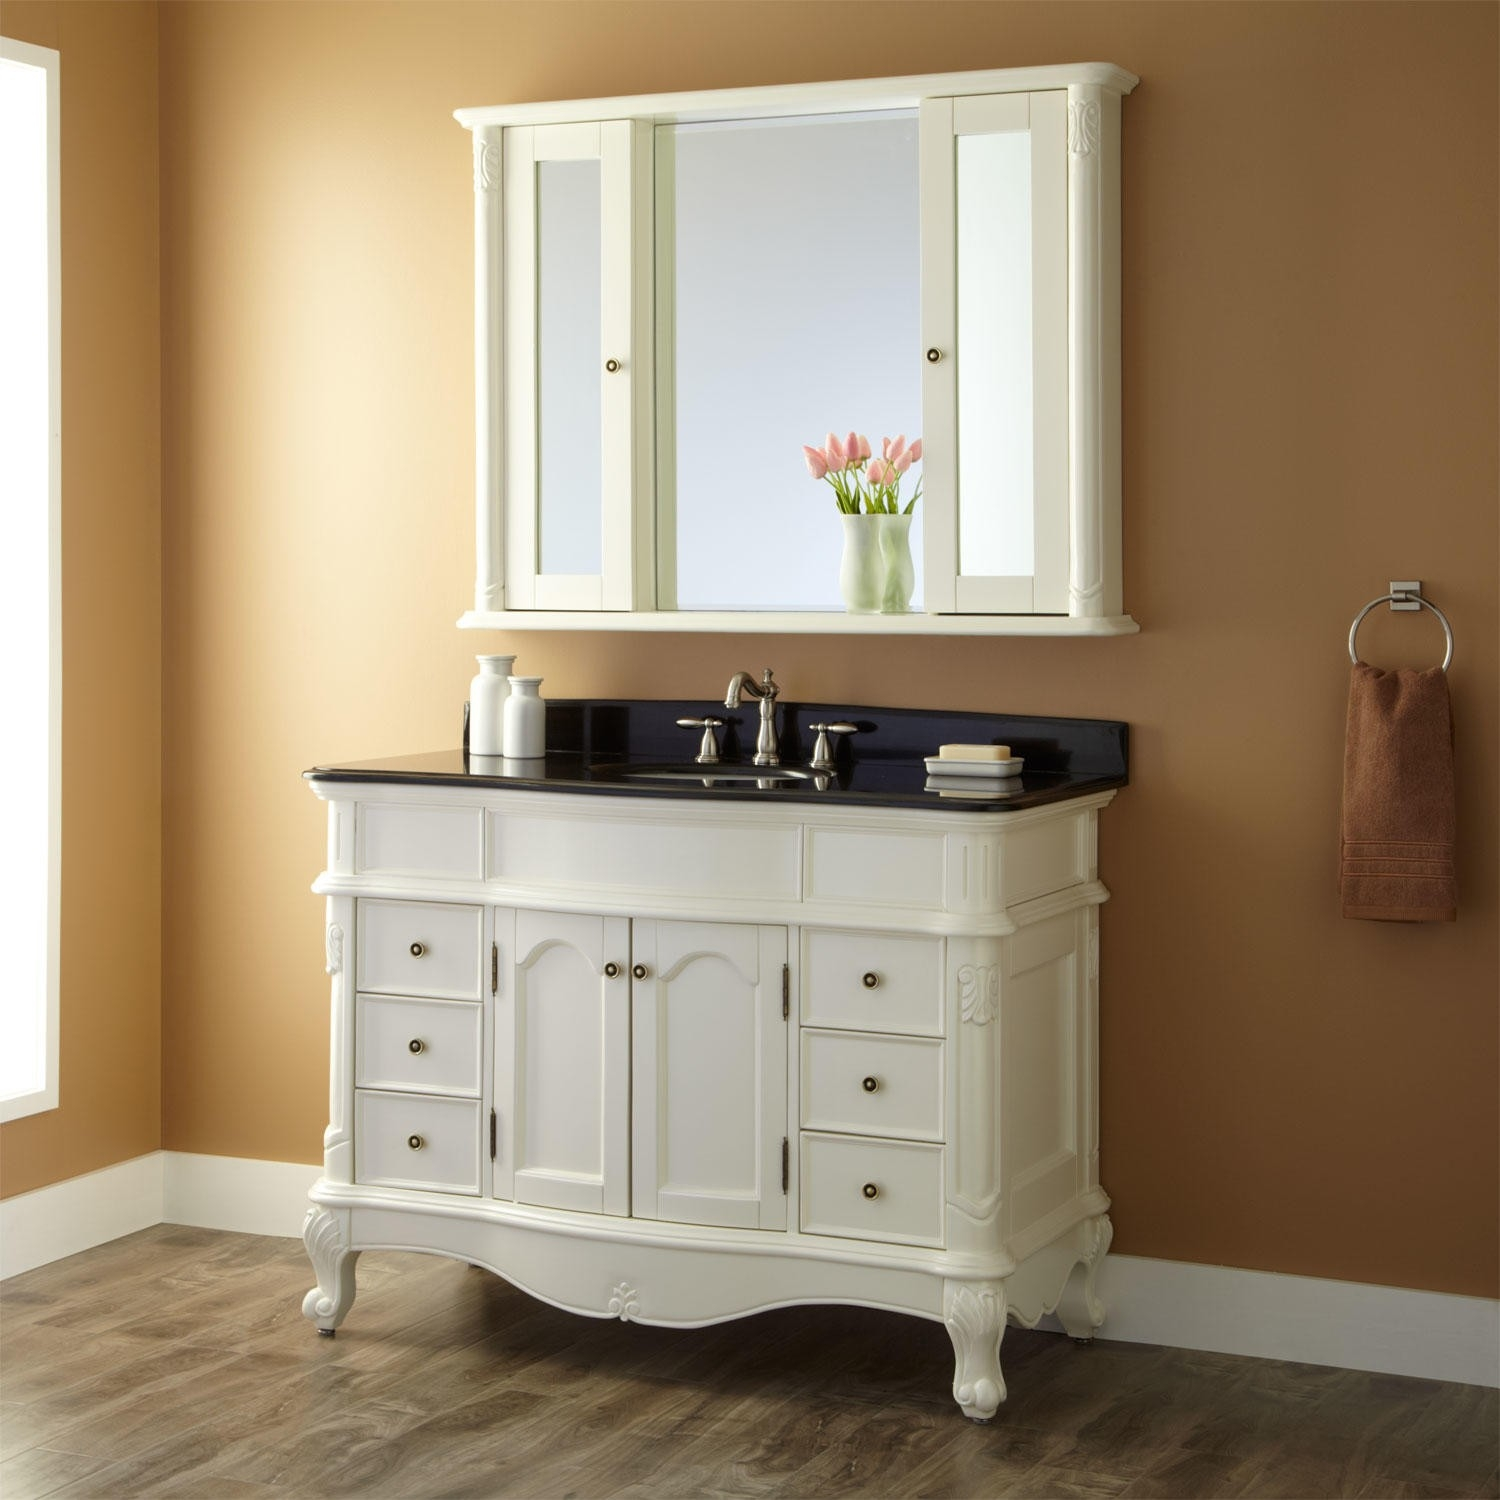 48 Bathroom Vanity Mirror